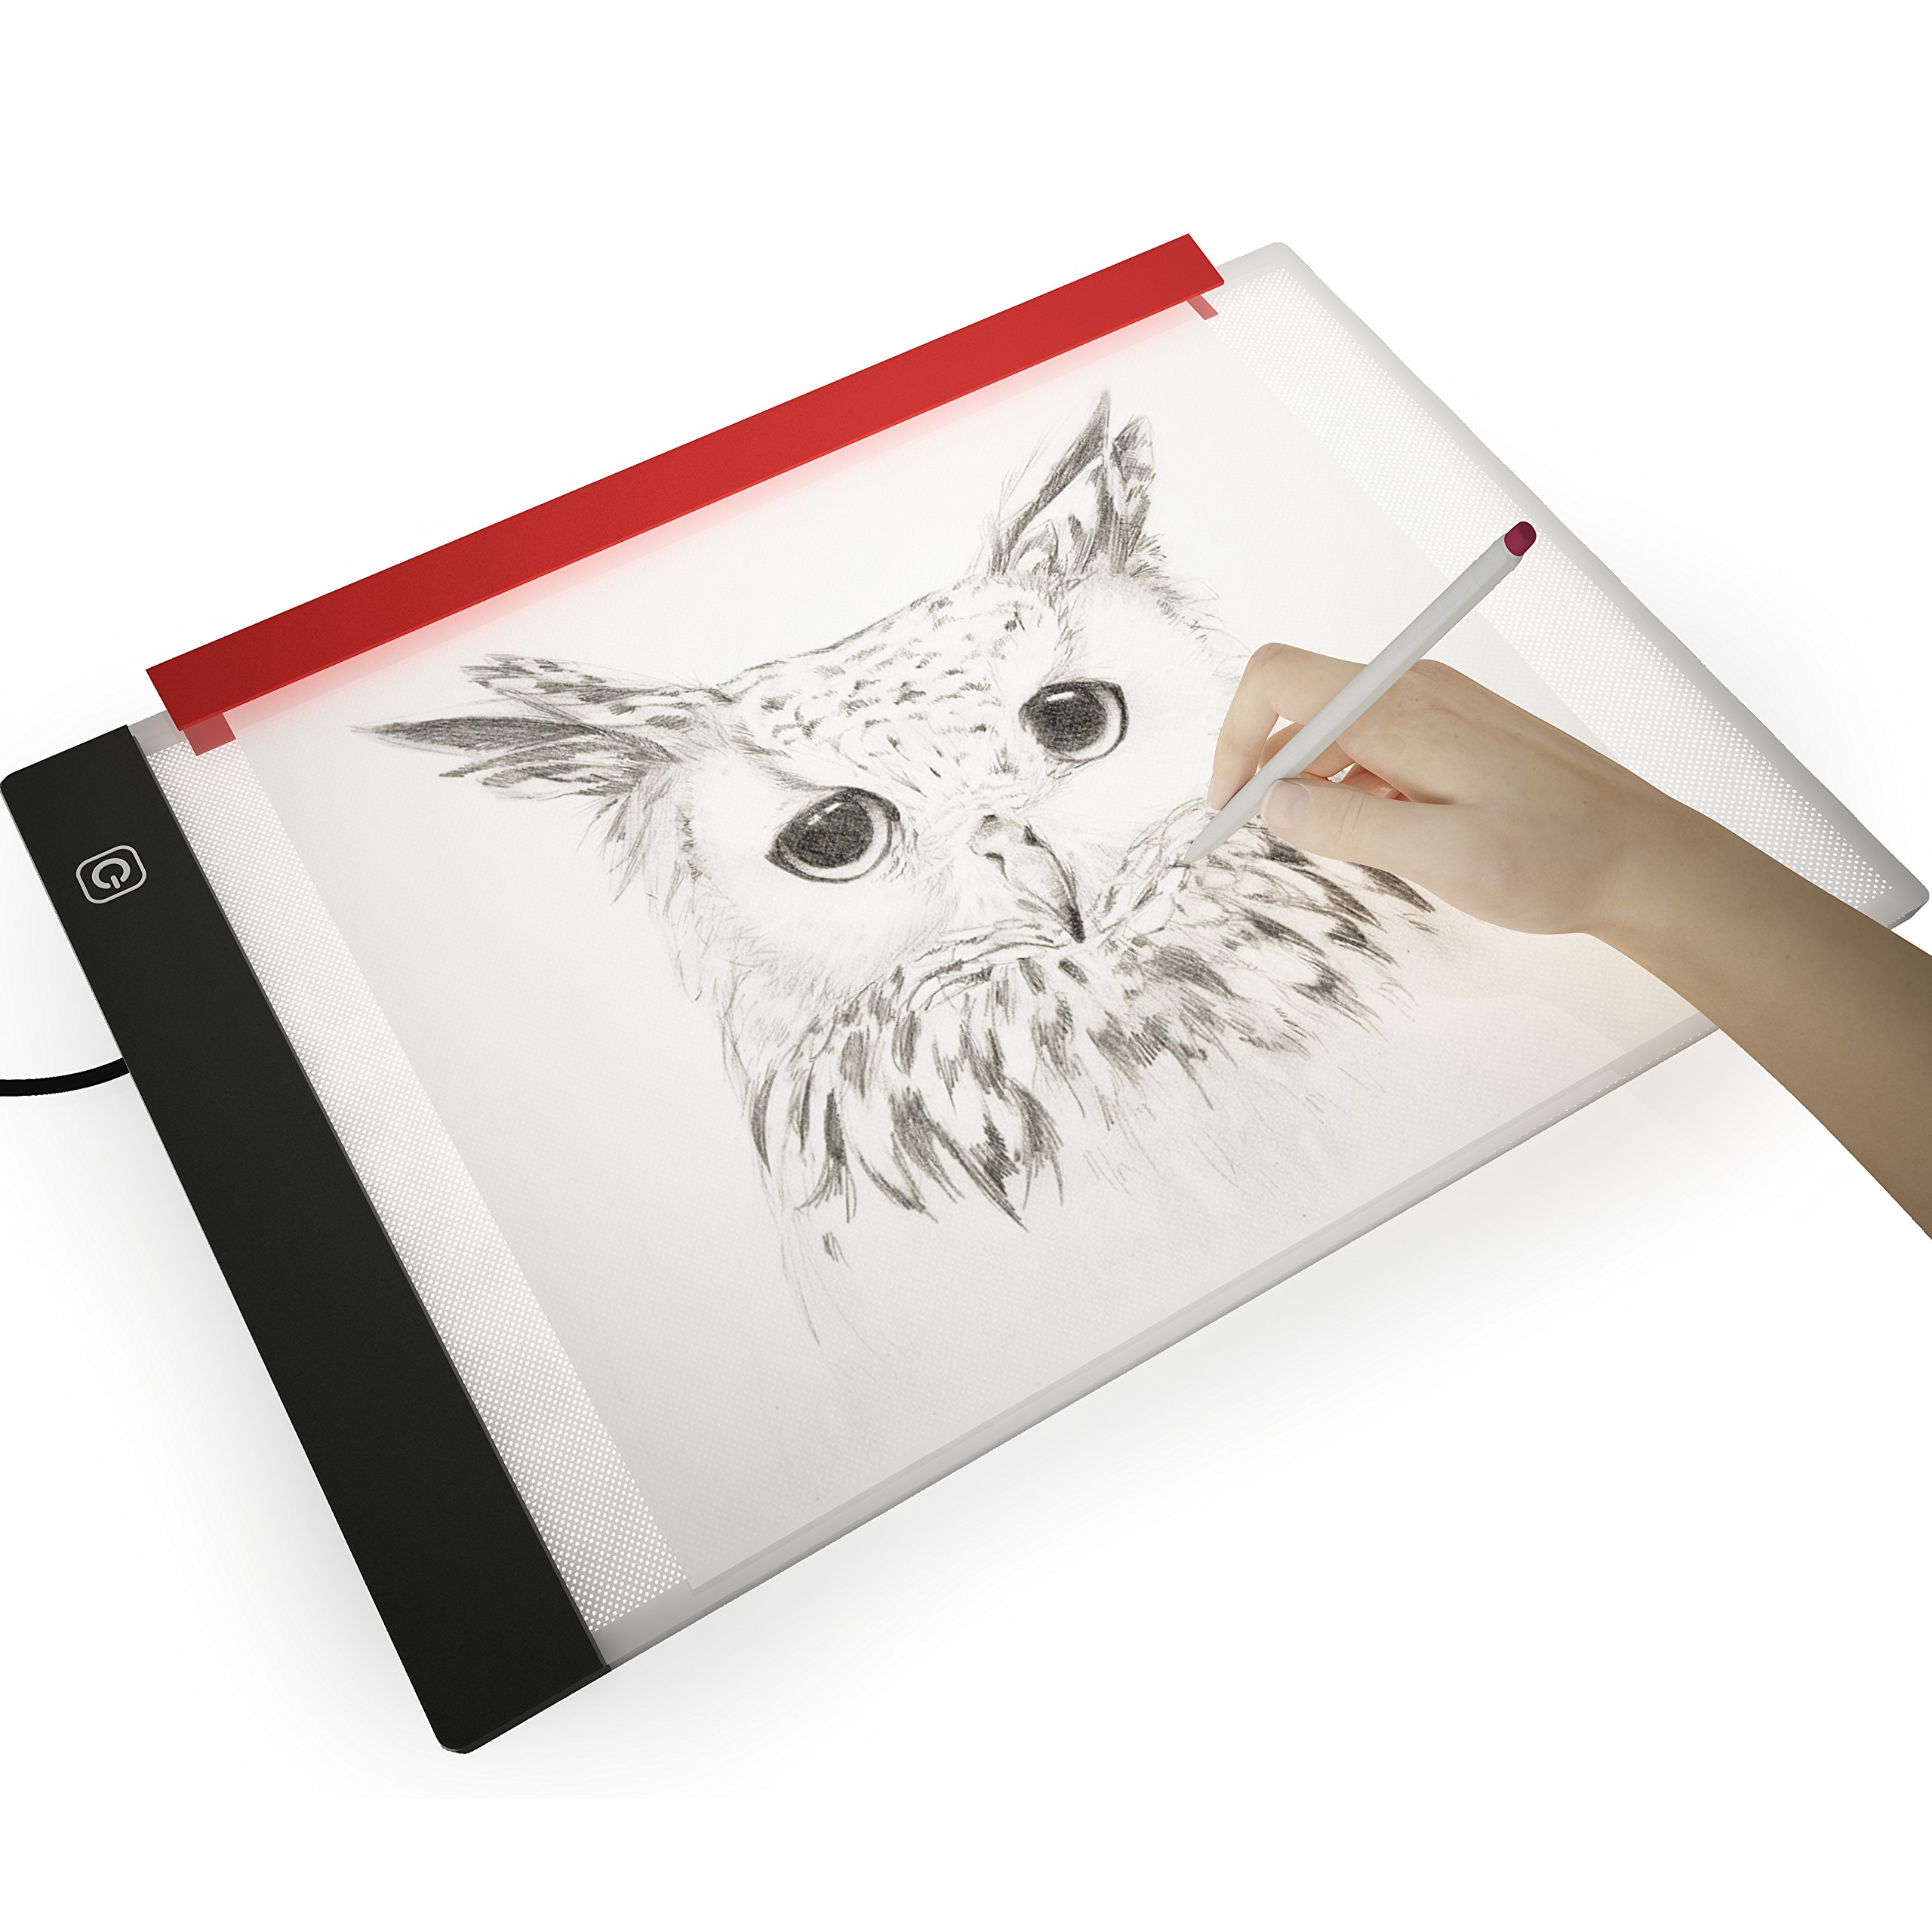 Picture/Perfect Light Box For Drawing and Tracing - Thin Portable LED Light Pad with Advanced Filter Prevents Eye Fatigue, Free Paper Holder, A4 13x9 inch Table With Hi-Mid-Low Brightness by PicturePerfect